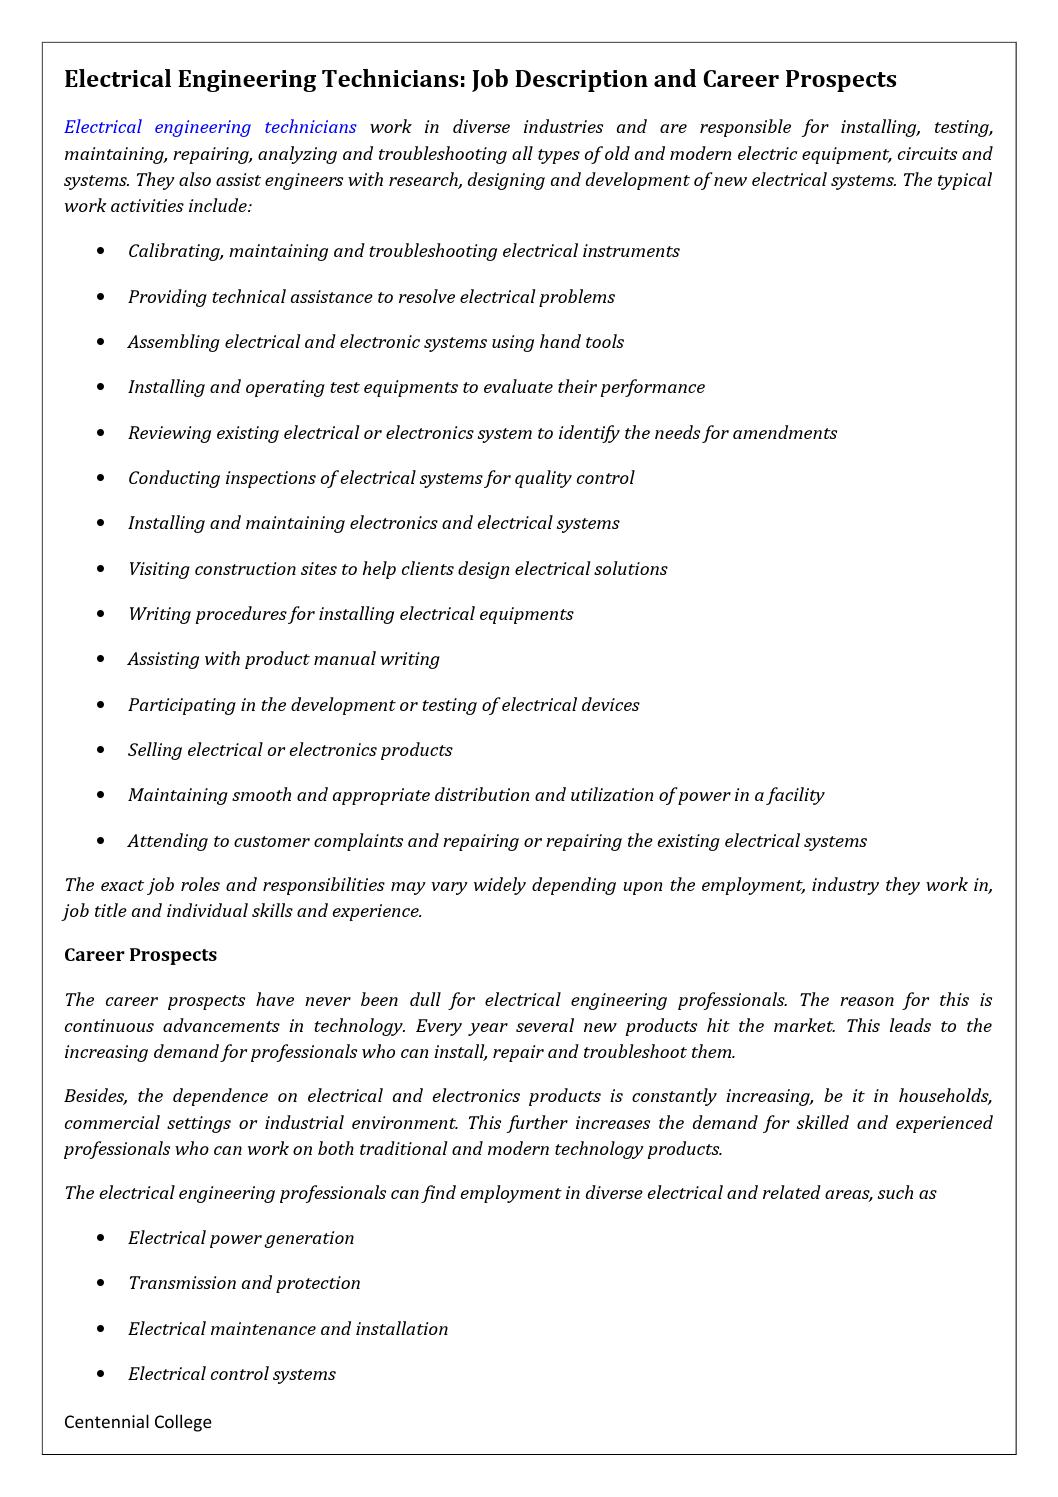 Electrical engineering technicians job description and career ...